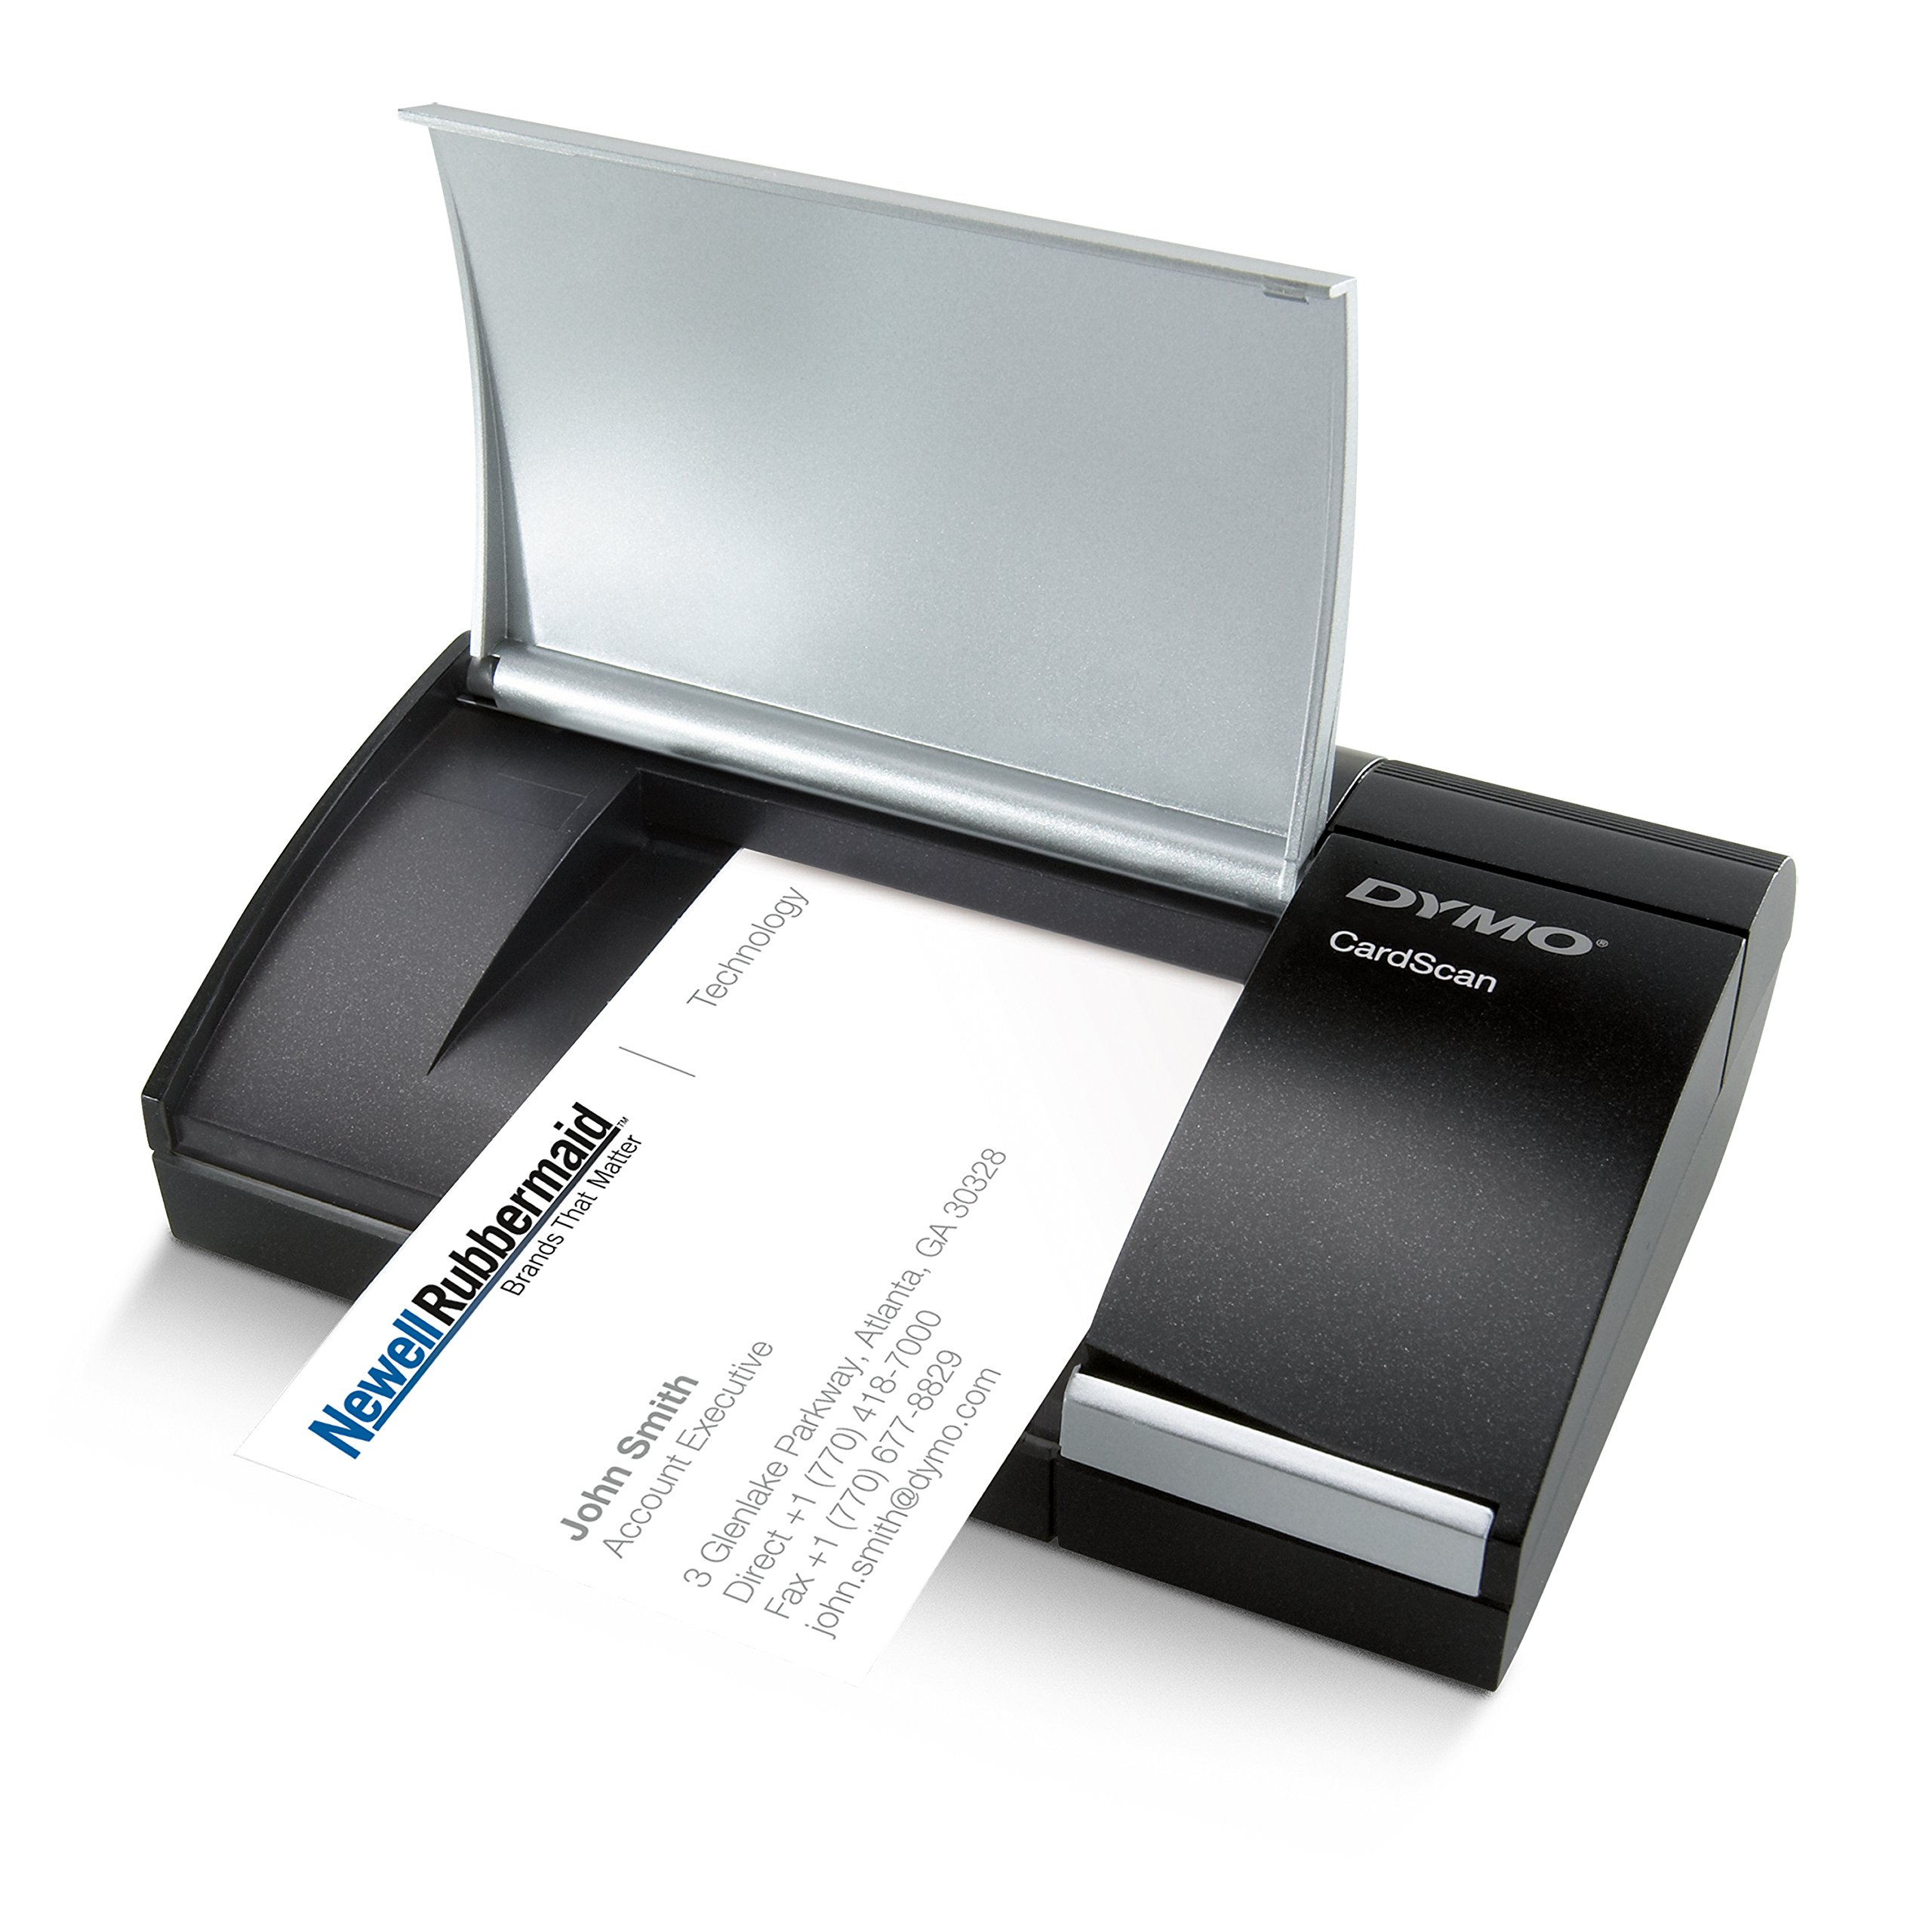 DYMO 1760685 CardScan Personal Card Scanner by DYMO (Image #3)